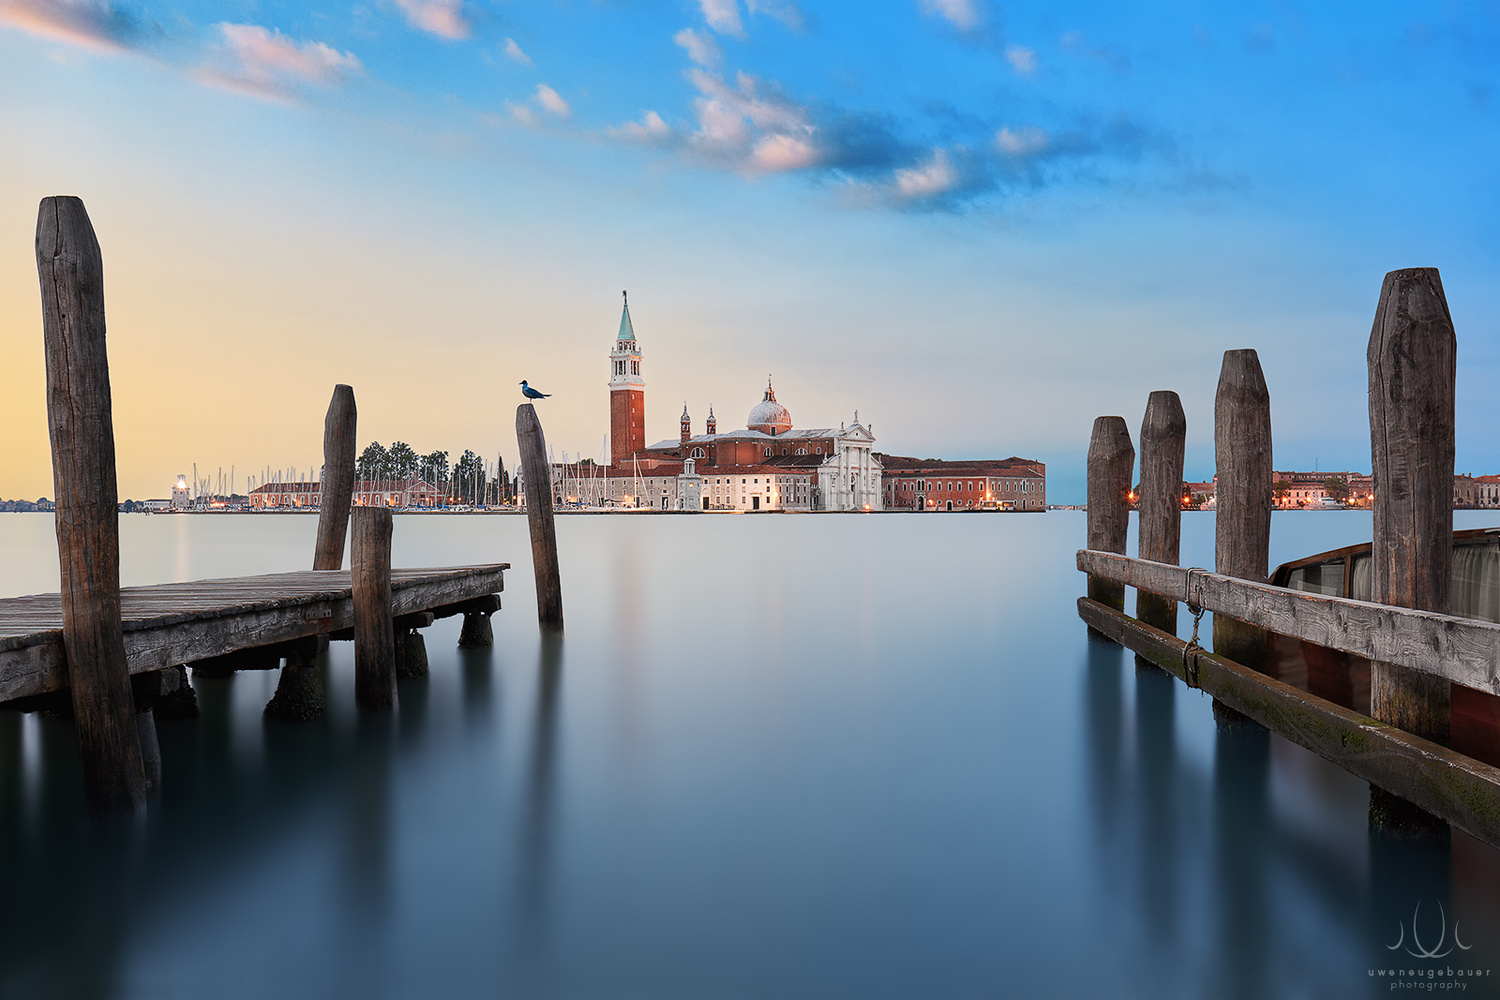 The Only One [Venice, Italy] by Uwe Neugebauer